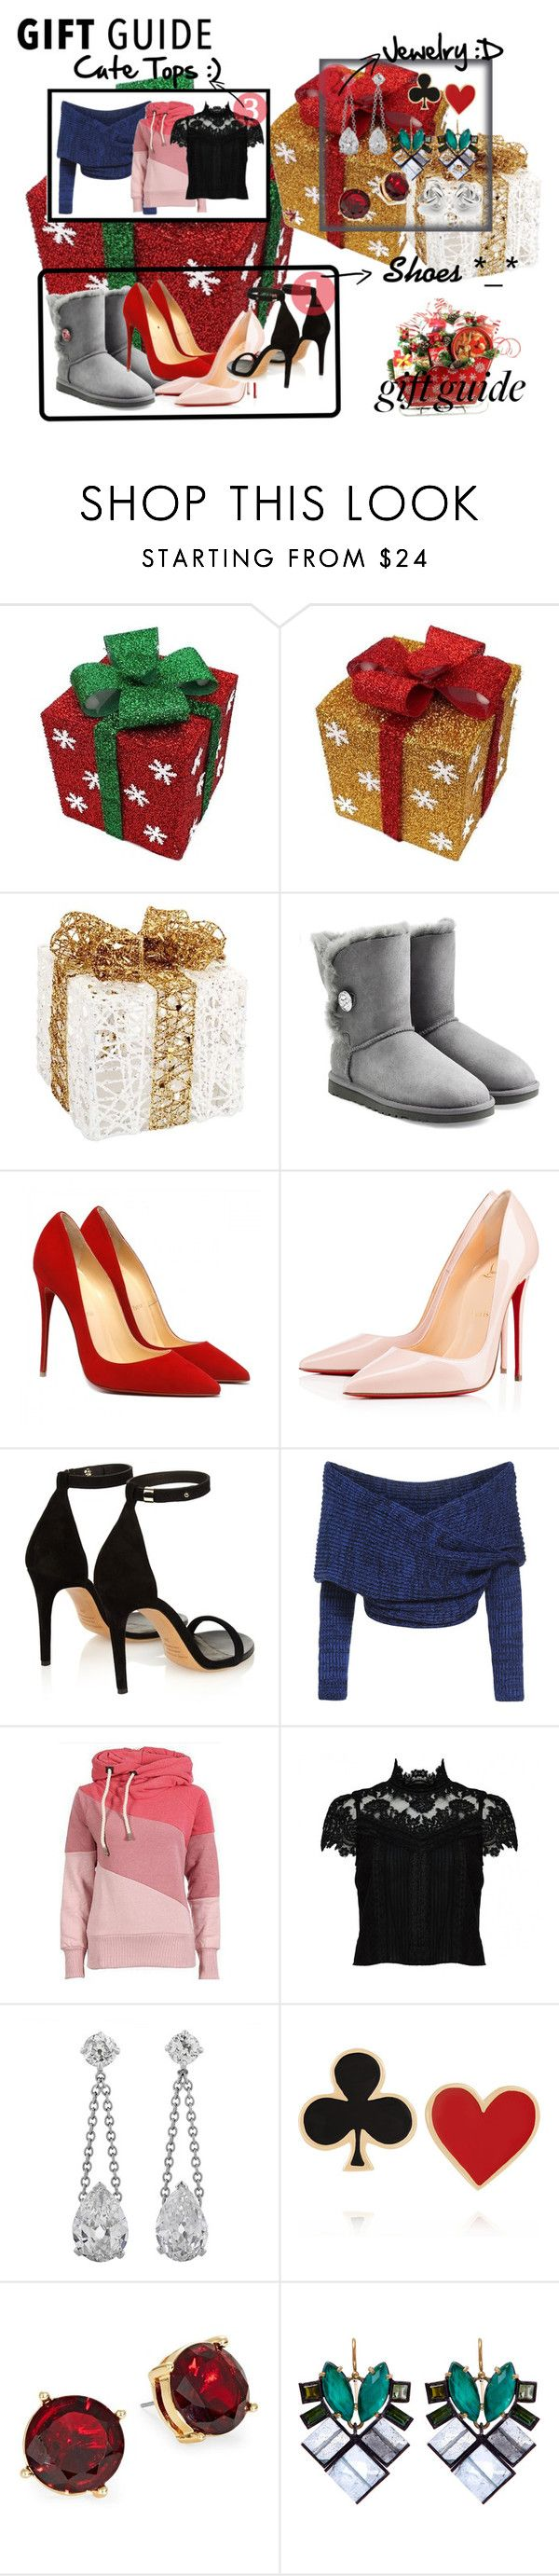 """""""Gift Guide"""" by senida-th ❤ liked on Polyvore featuring Melrose International, UGG Australia, Christian Louboutin, Isabel Marant, Alice + Olivia, Alison Lou, Lauren Ralph Lauren, Nak Armstrong, Georgini and giftguide"""